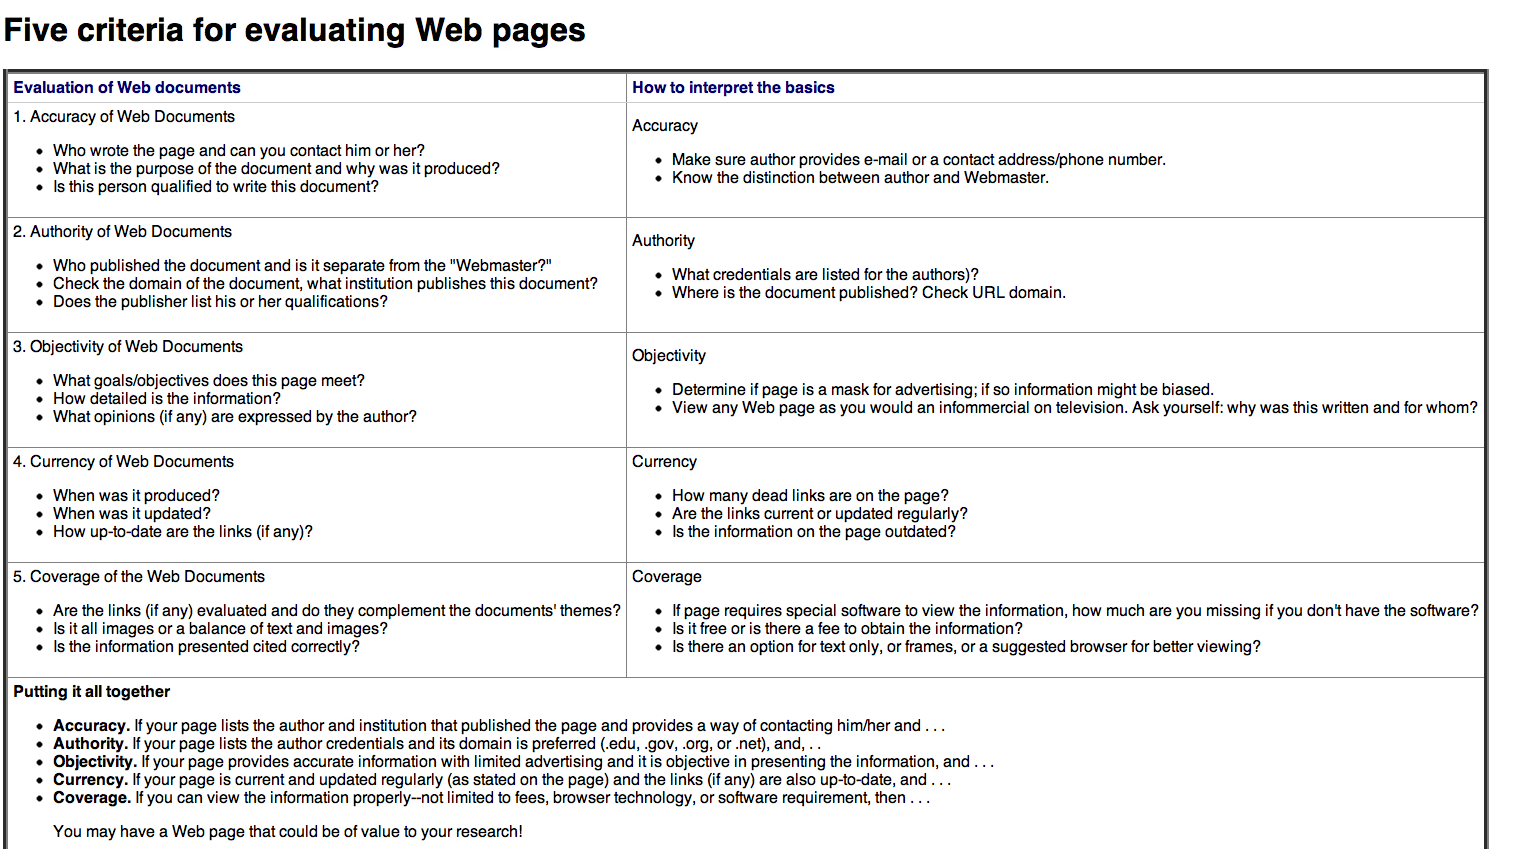 Five criteria for evaluating web pages, accuracy, authority, objectivity, currency, coverage